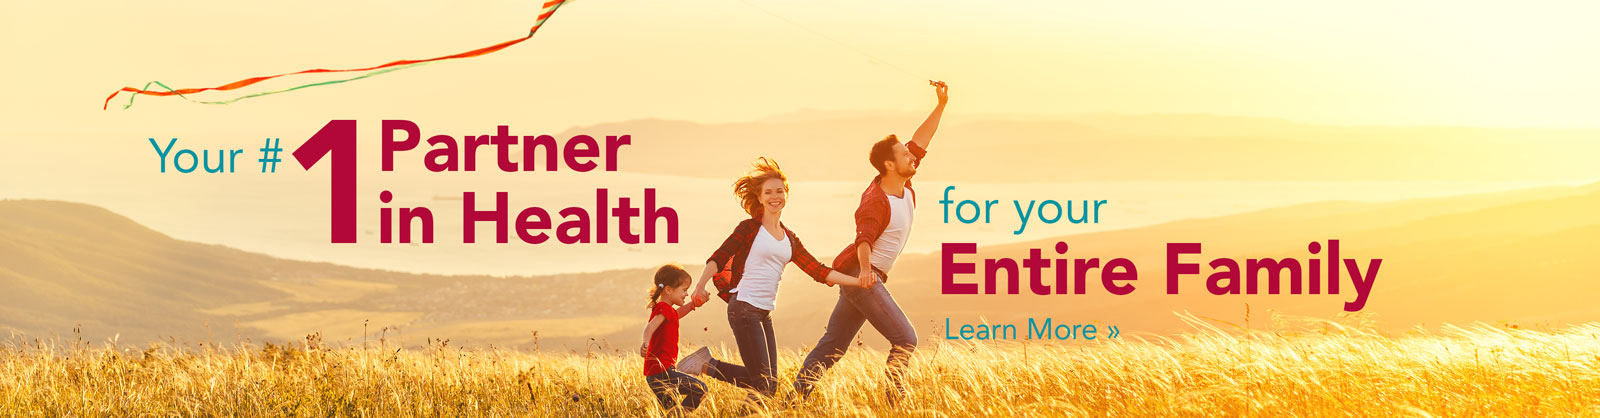 Your #1 Partner in Health for your Entire Family